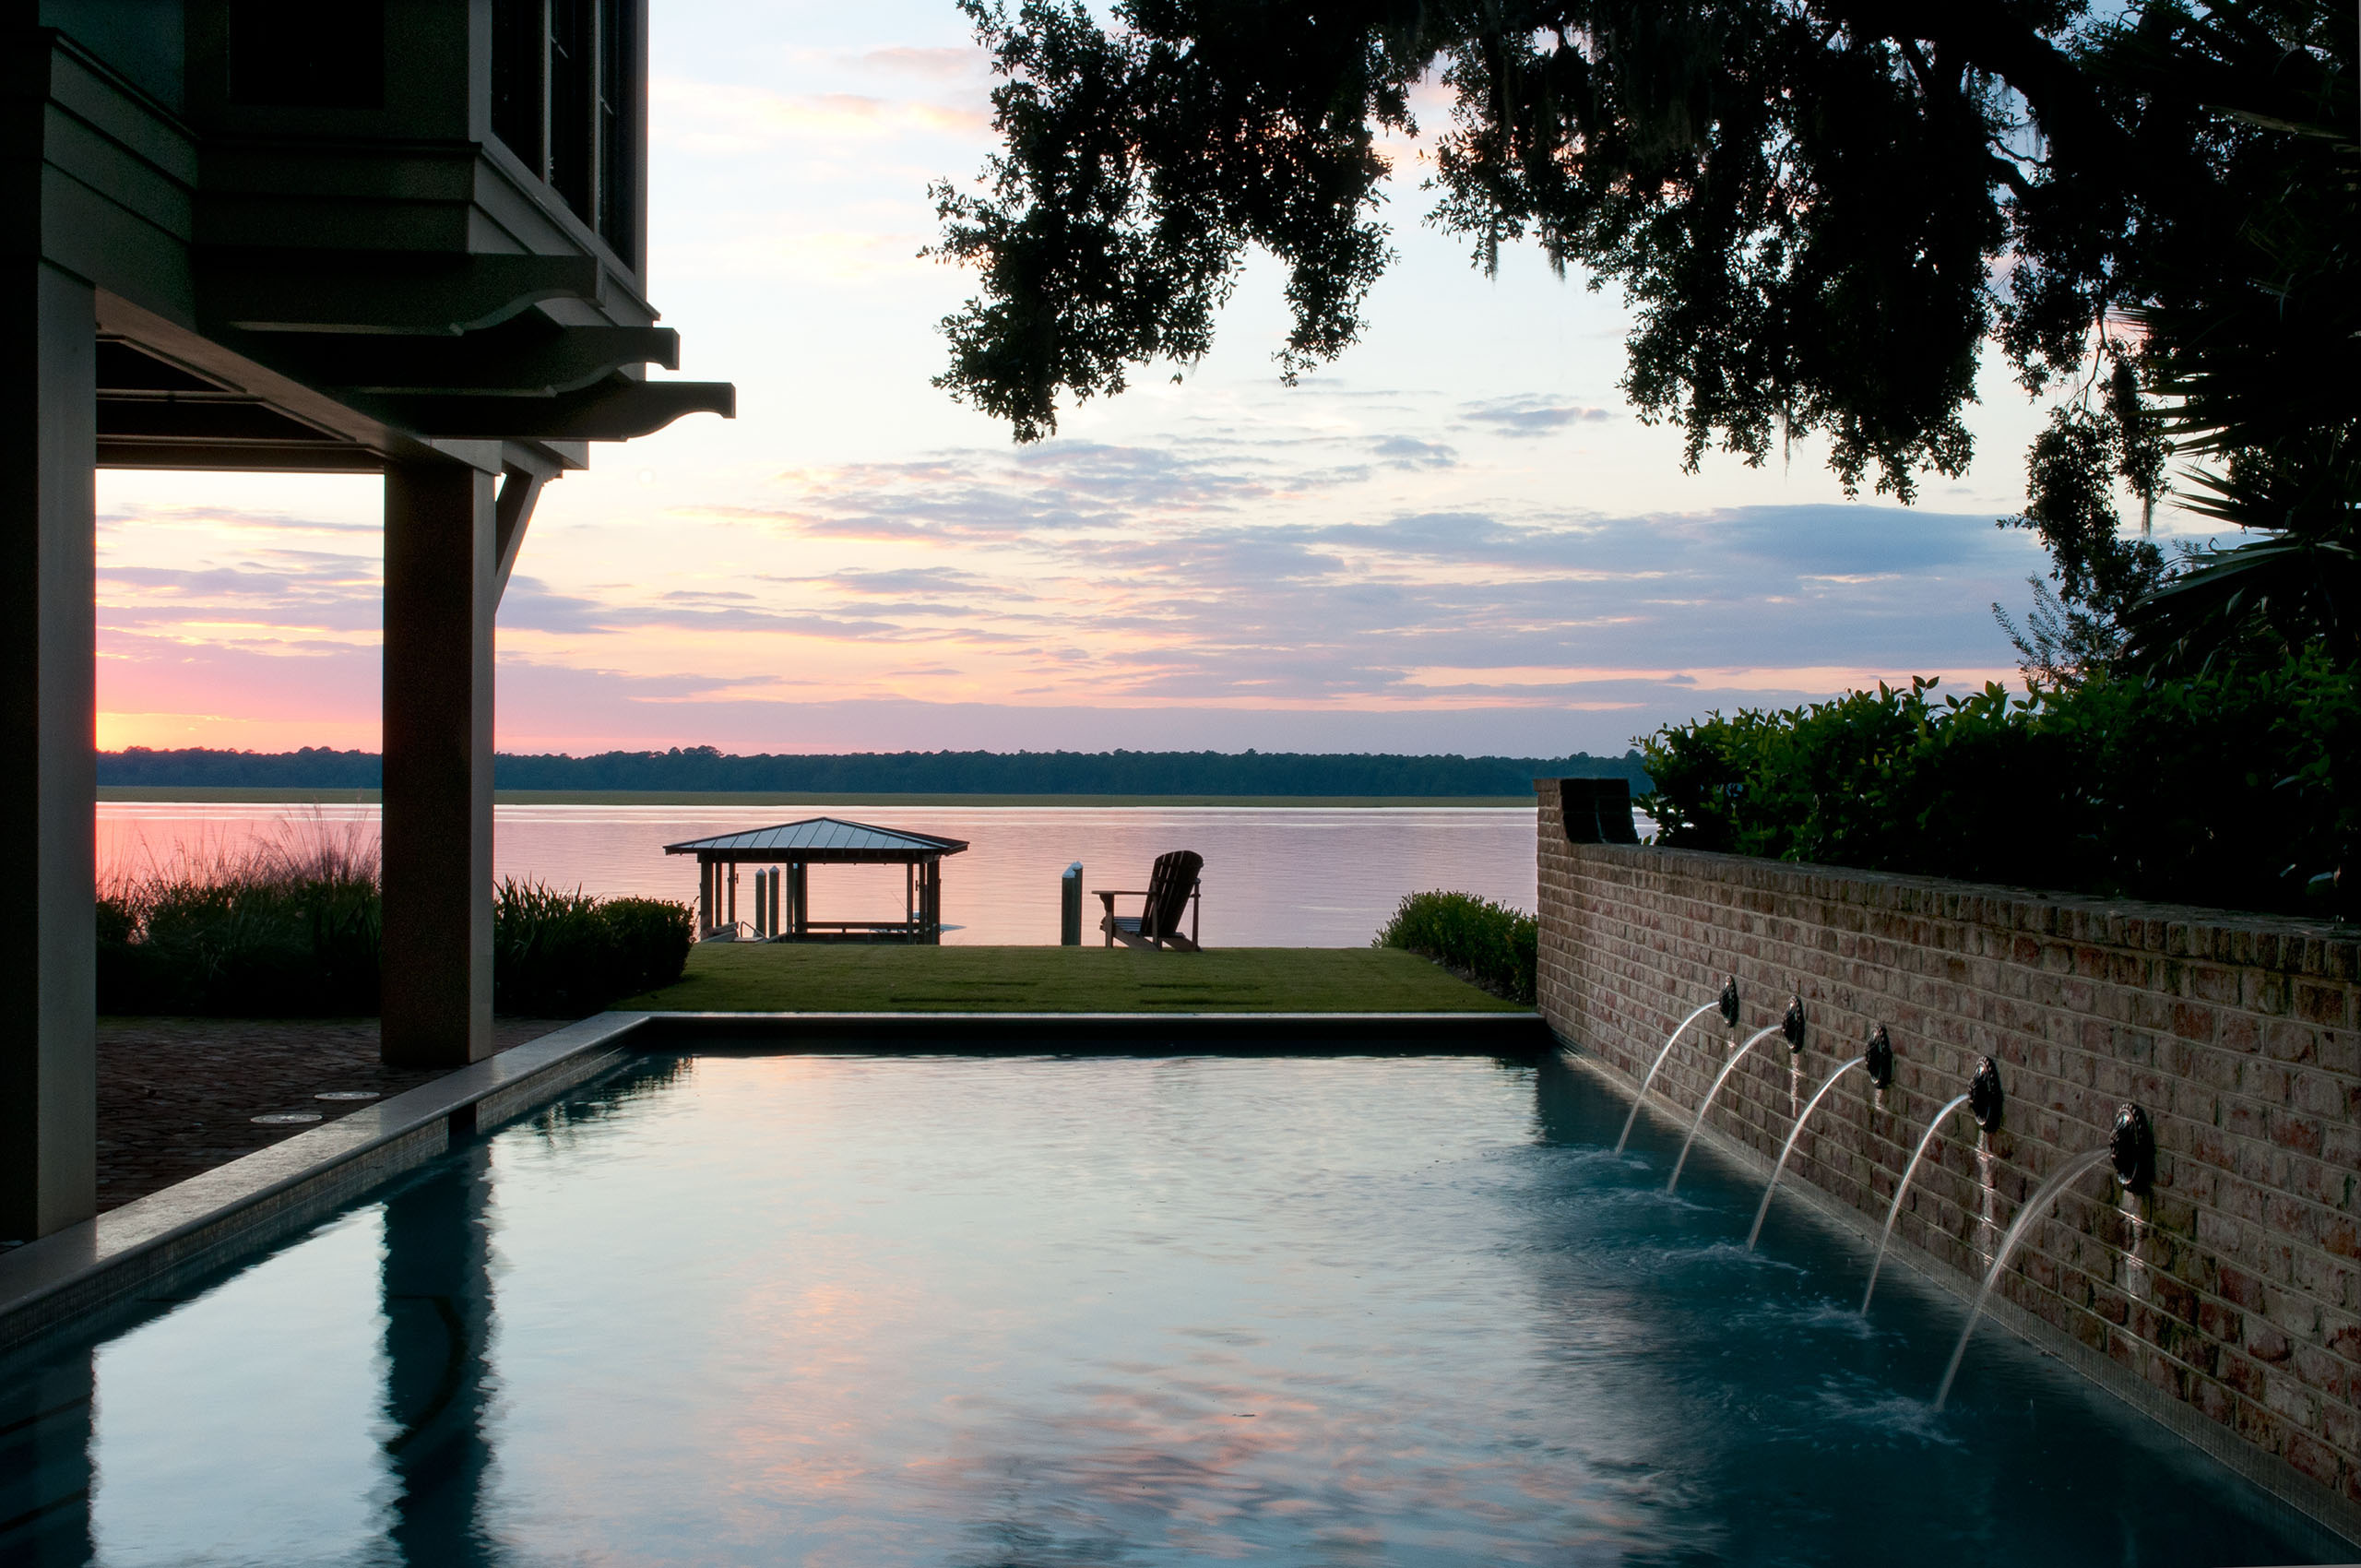 South Carolina Residence Pool and River View